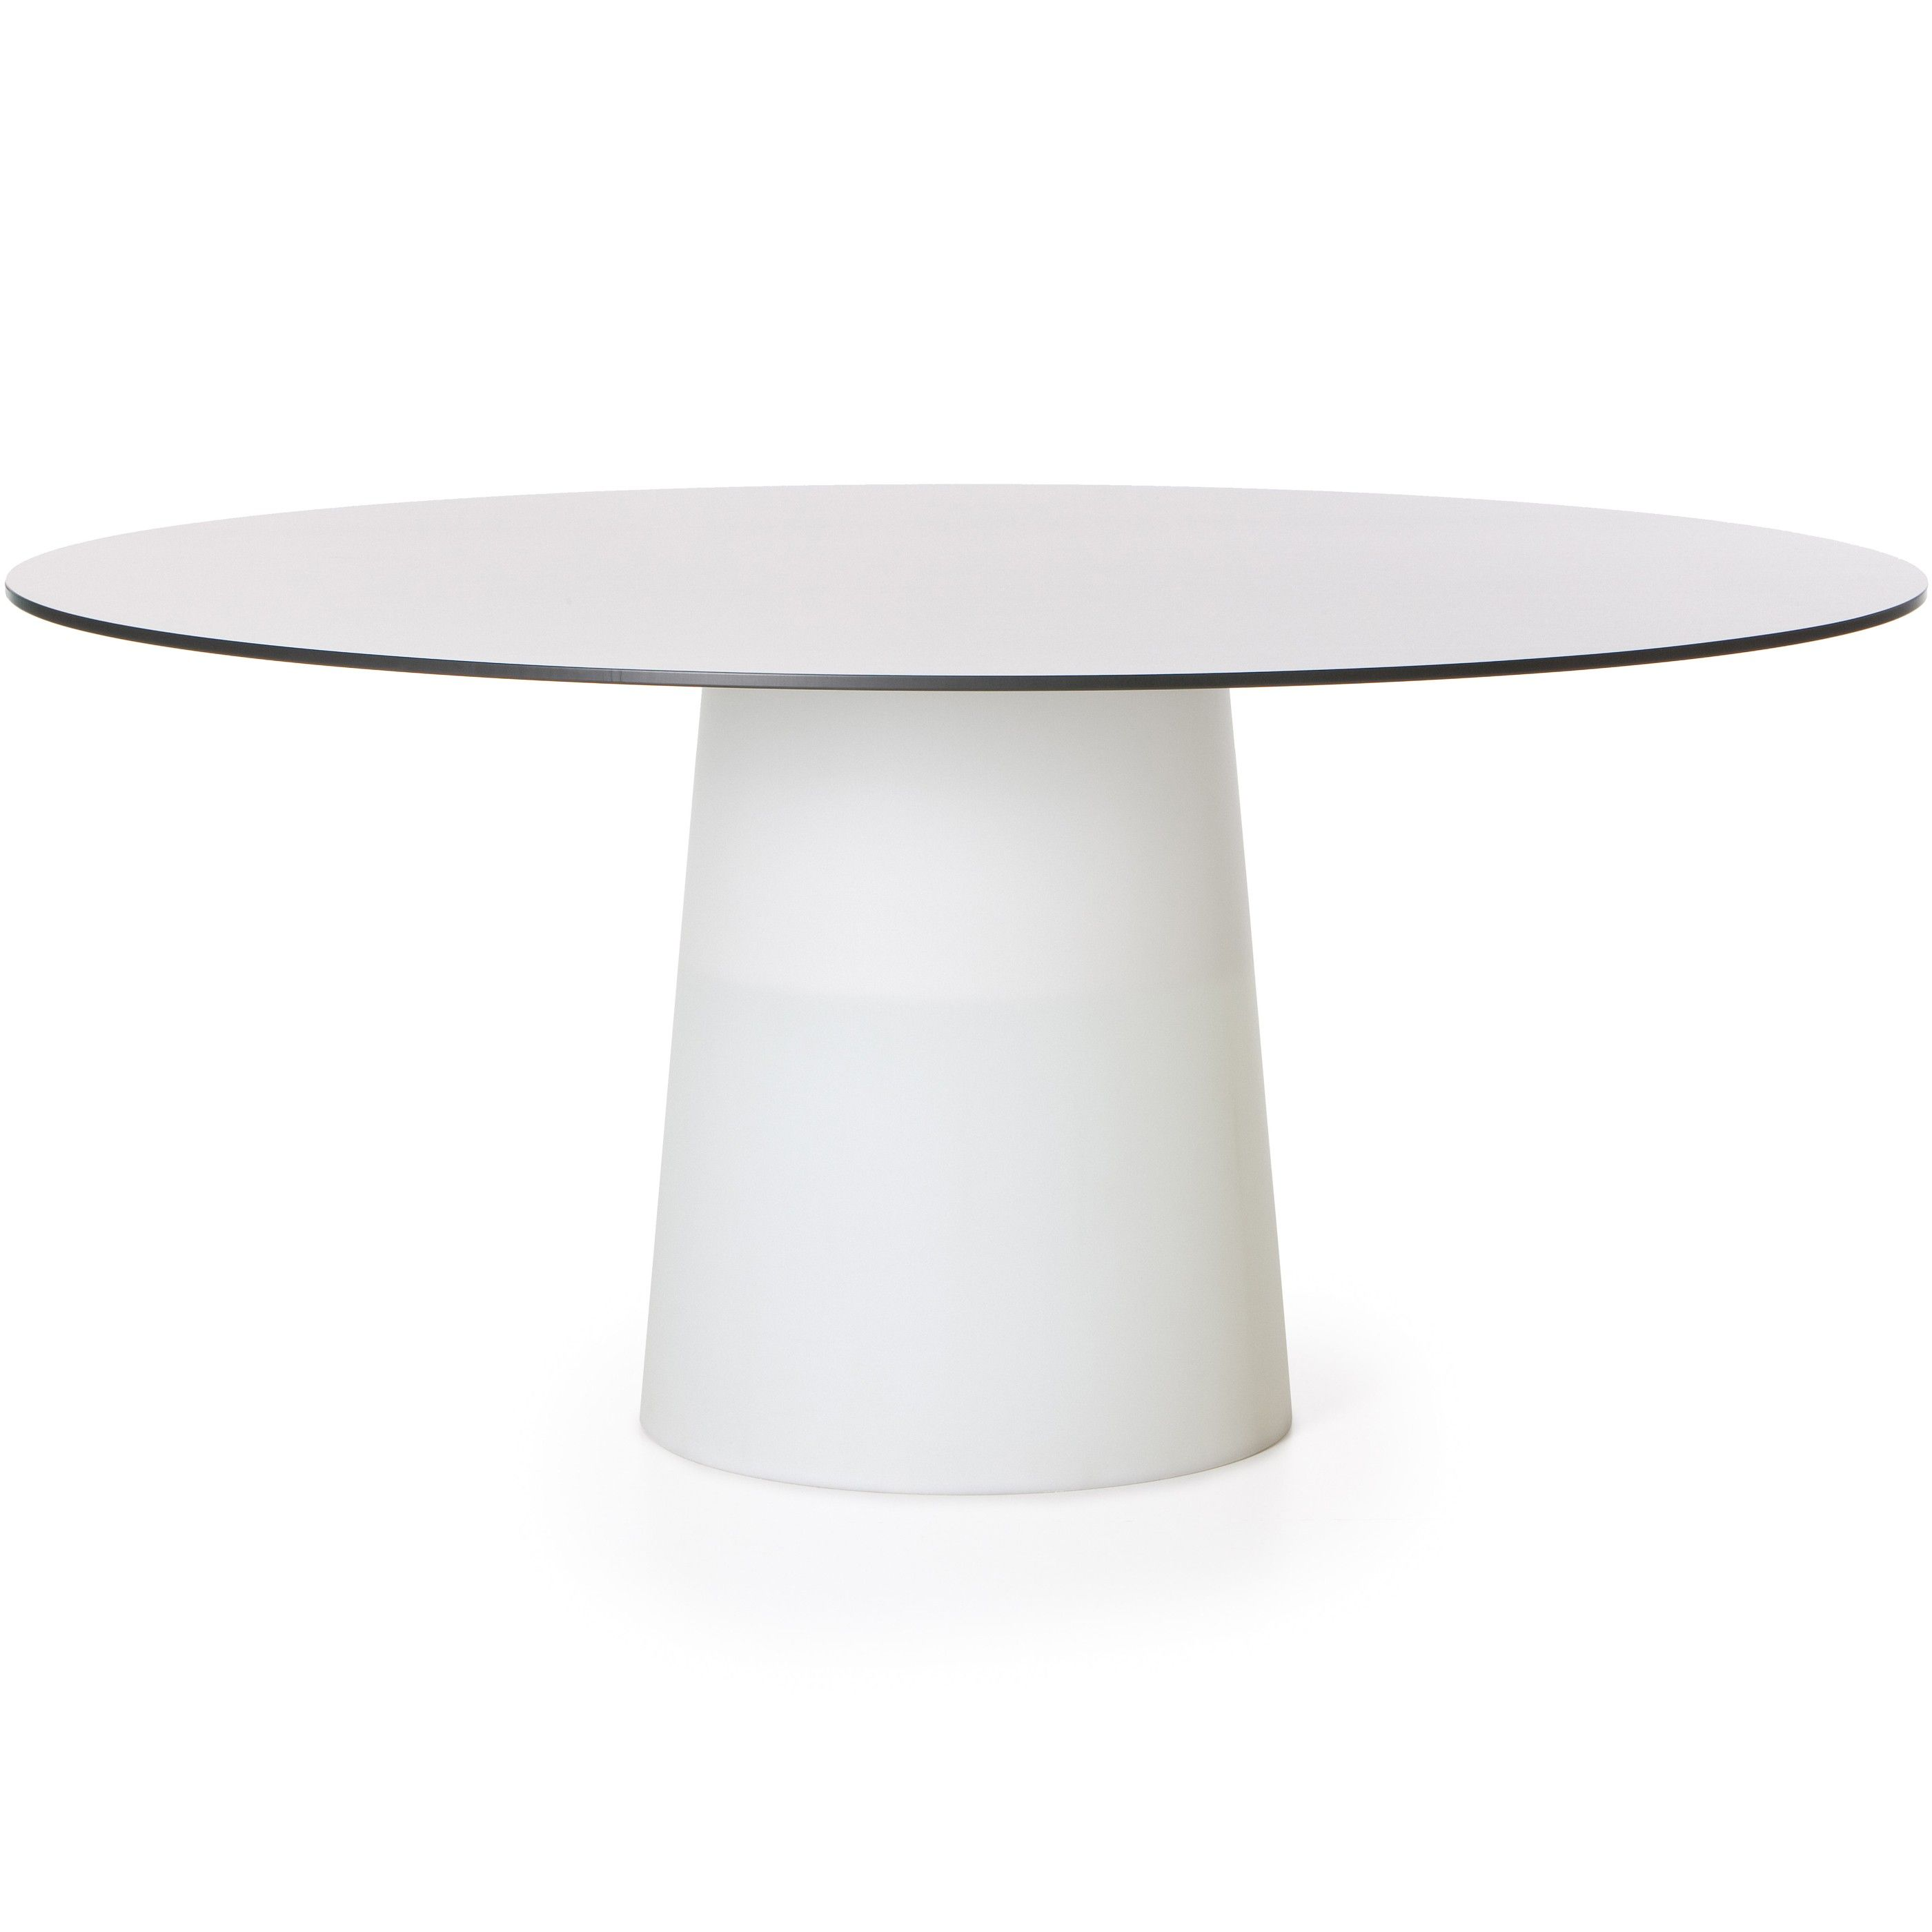 Tafel Rond 120.Moooi Container Tafel Rond Wit 120